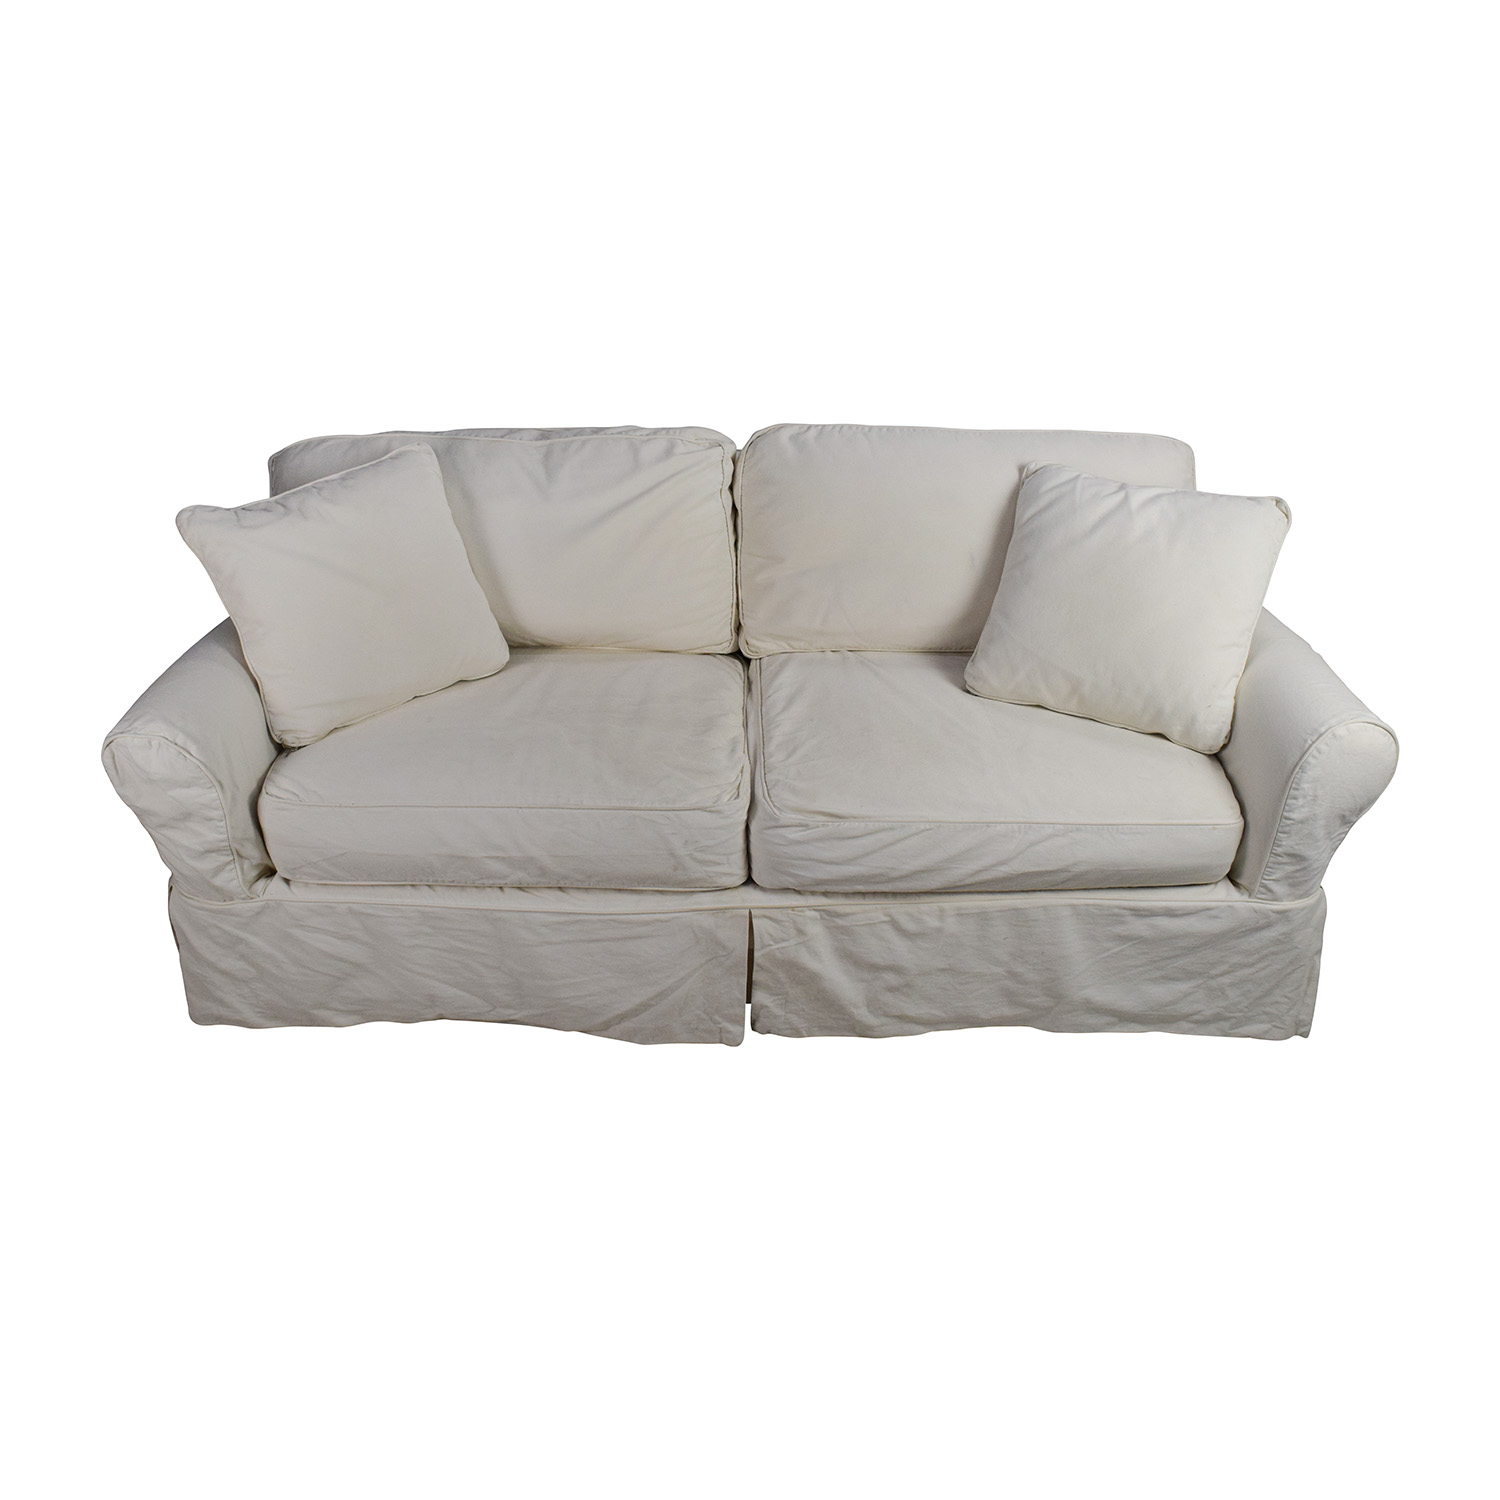 Lovesac Sofa For Sale: Movie Sac Cover Coupon Code